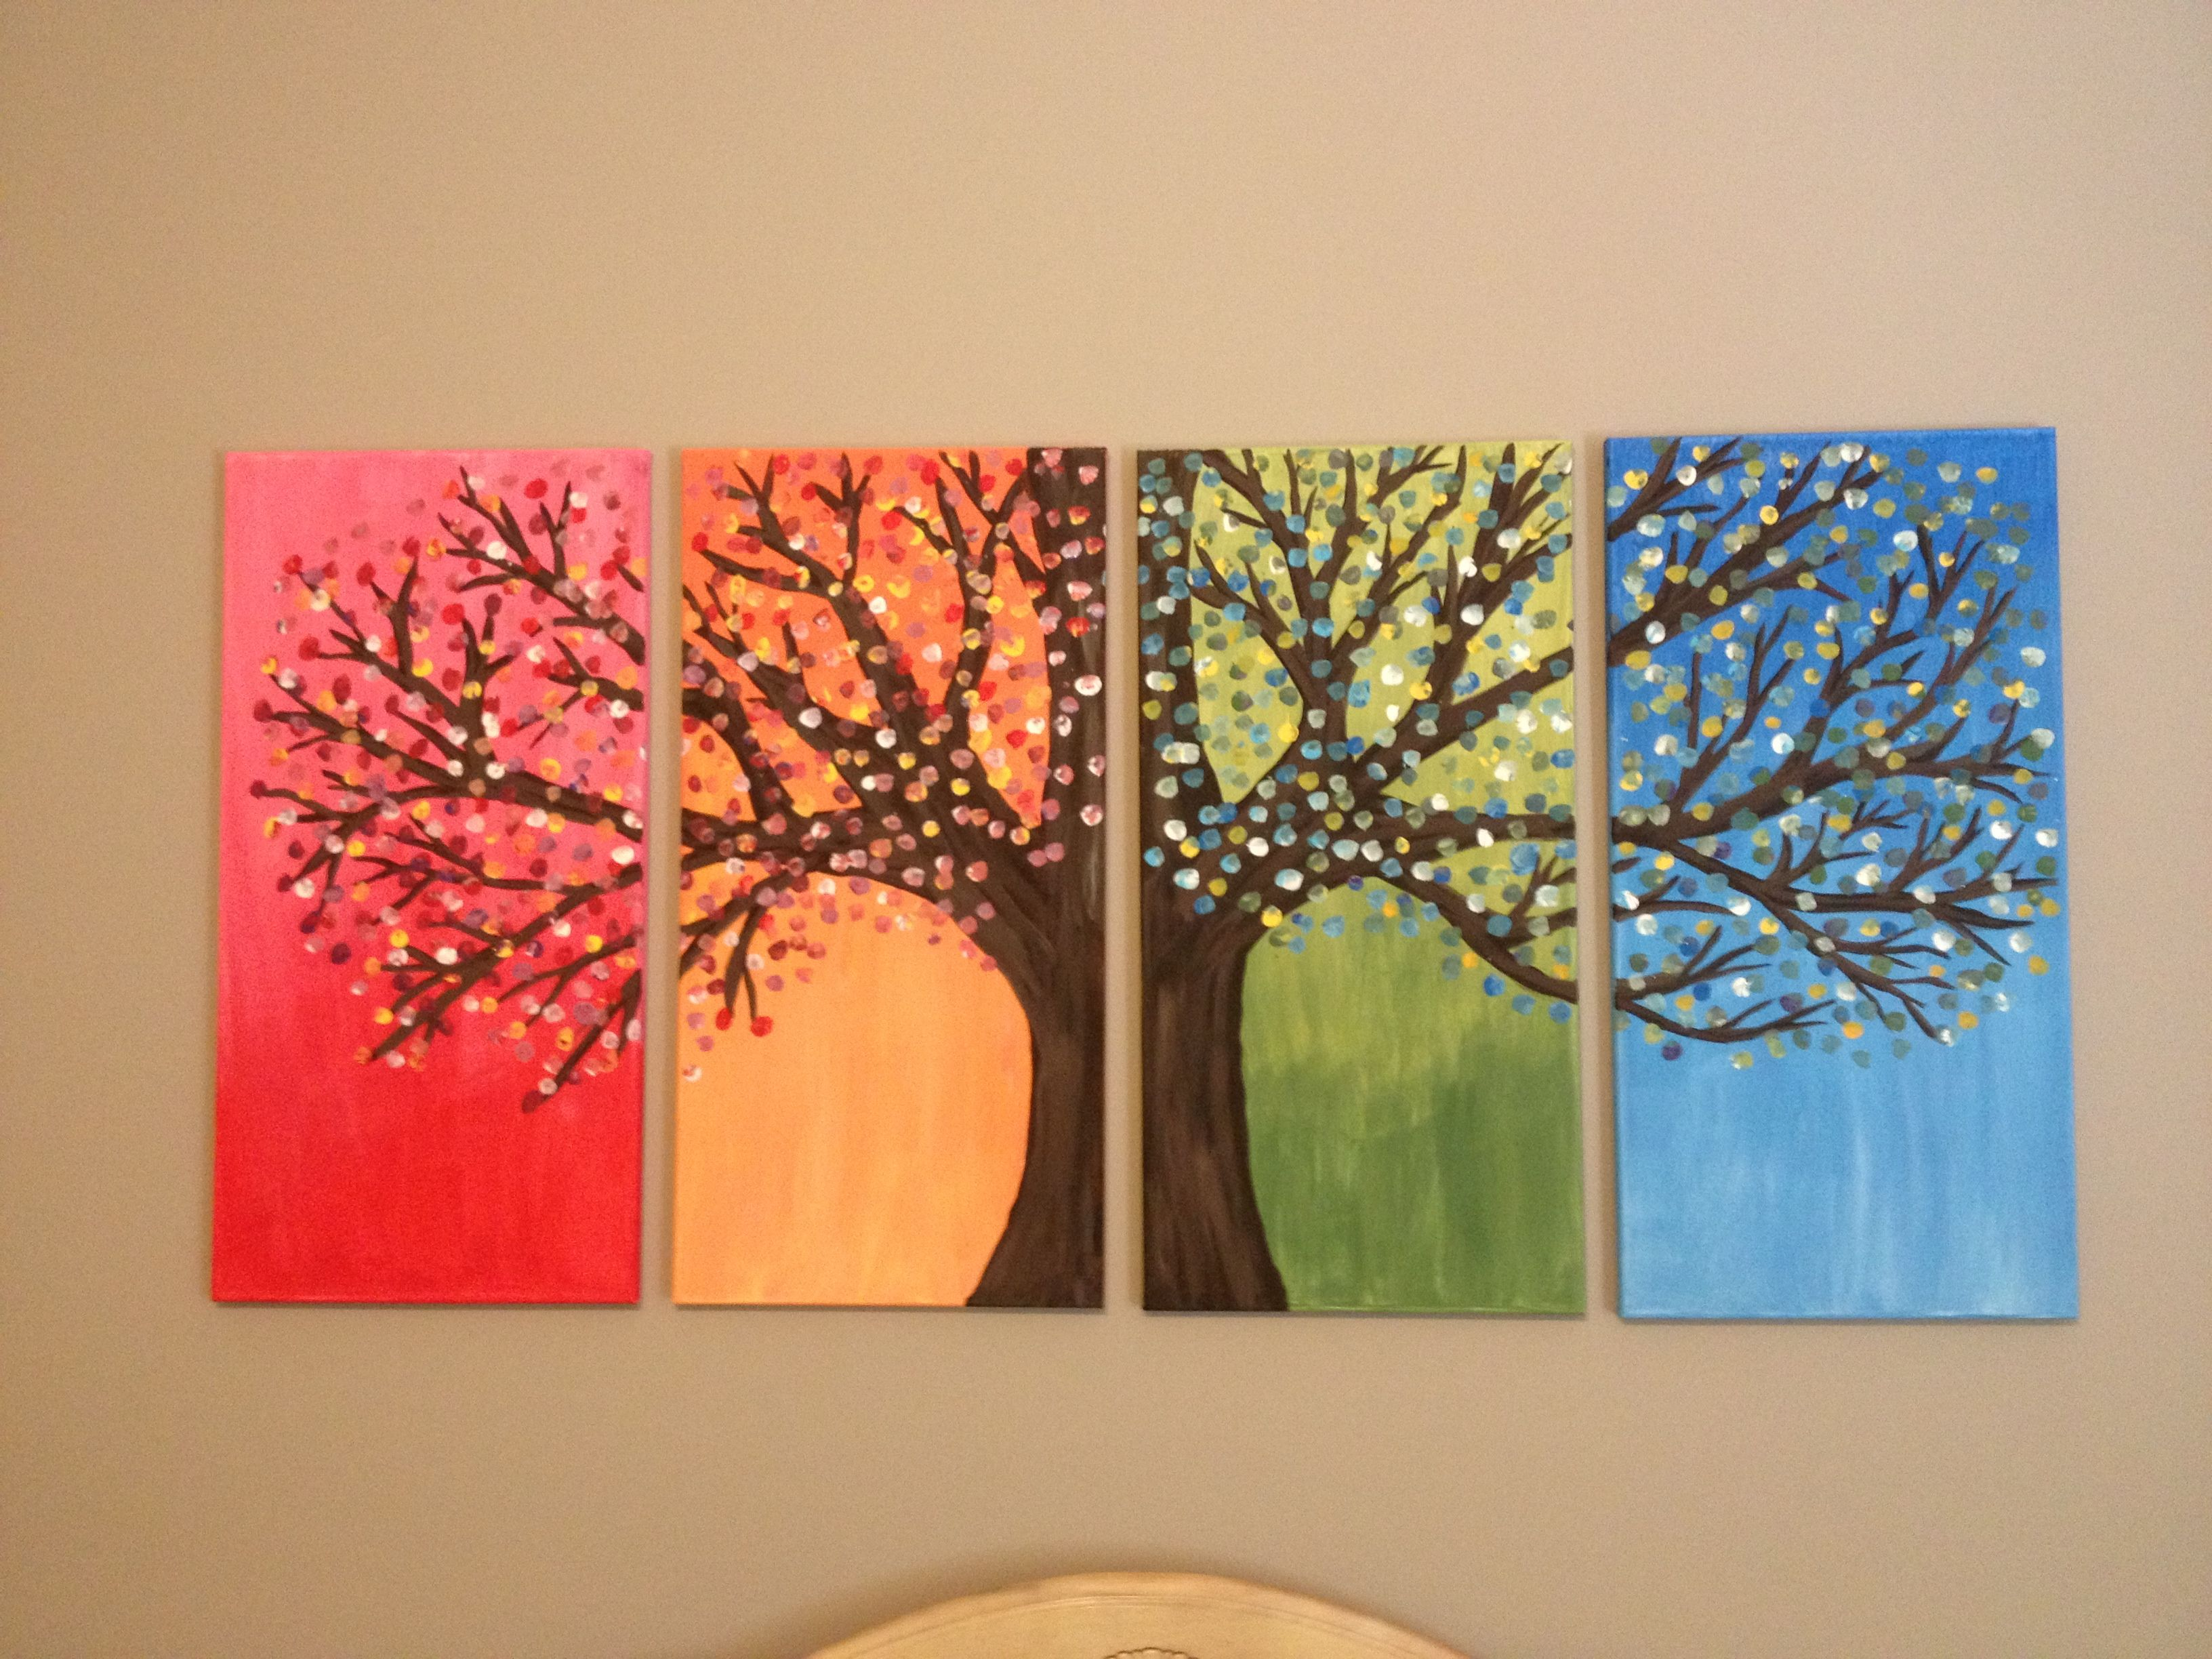 Best Ideas About Diy Tree Painting On Pinterest Acrylic Art - Diy bedroom painting ideas